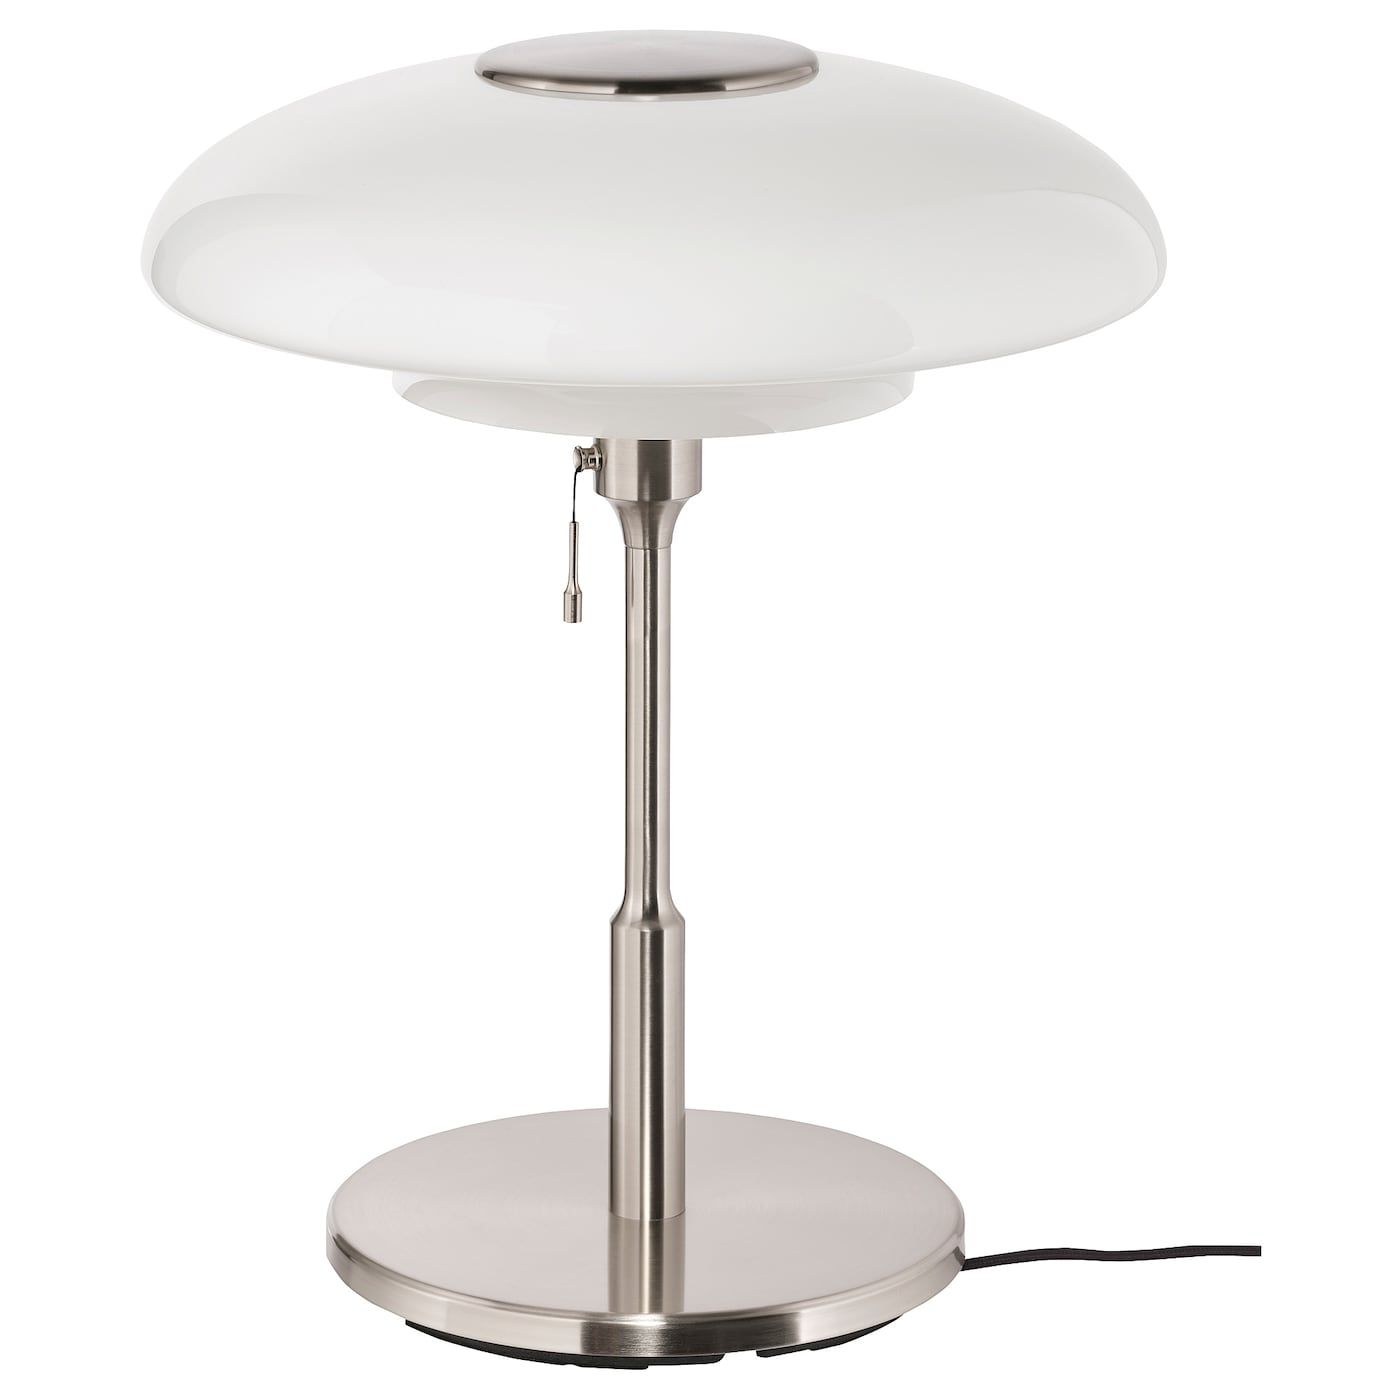 Tallbyn Table Lamp With Led Bulb Nickel Plated Opal Glass Ikea In 2020 Lamp Led Bulb Table Lamp